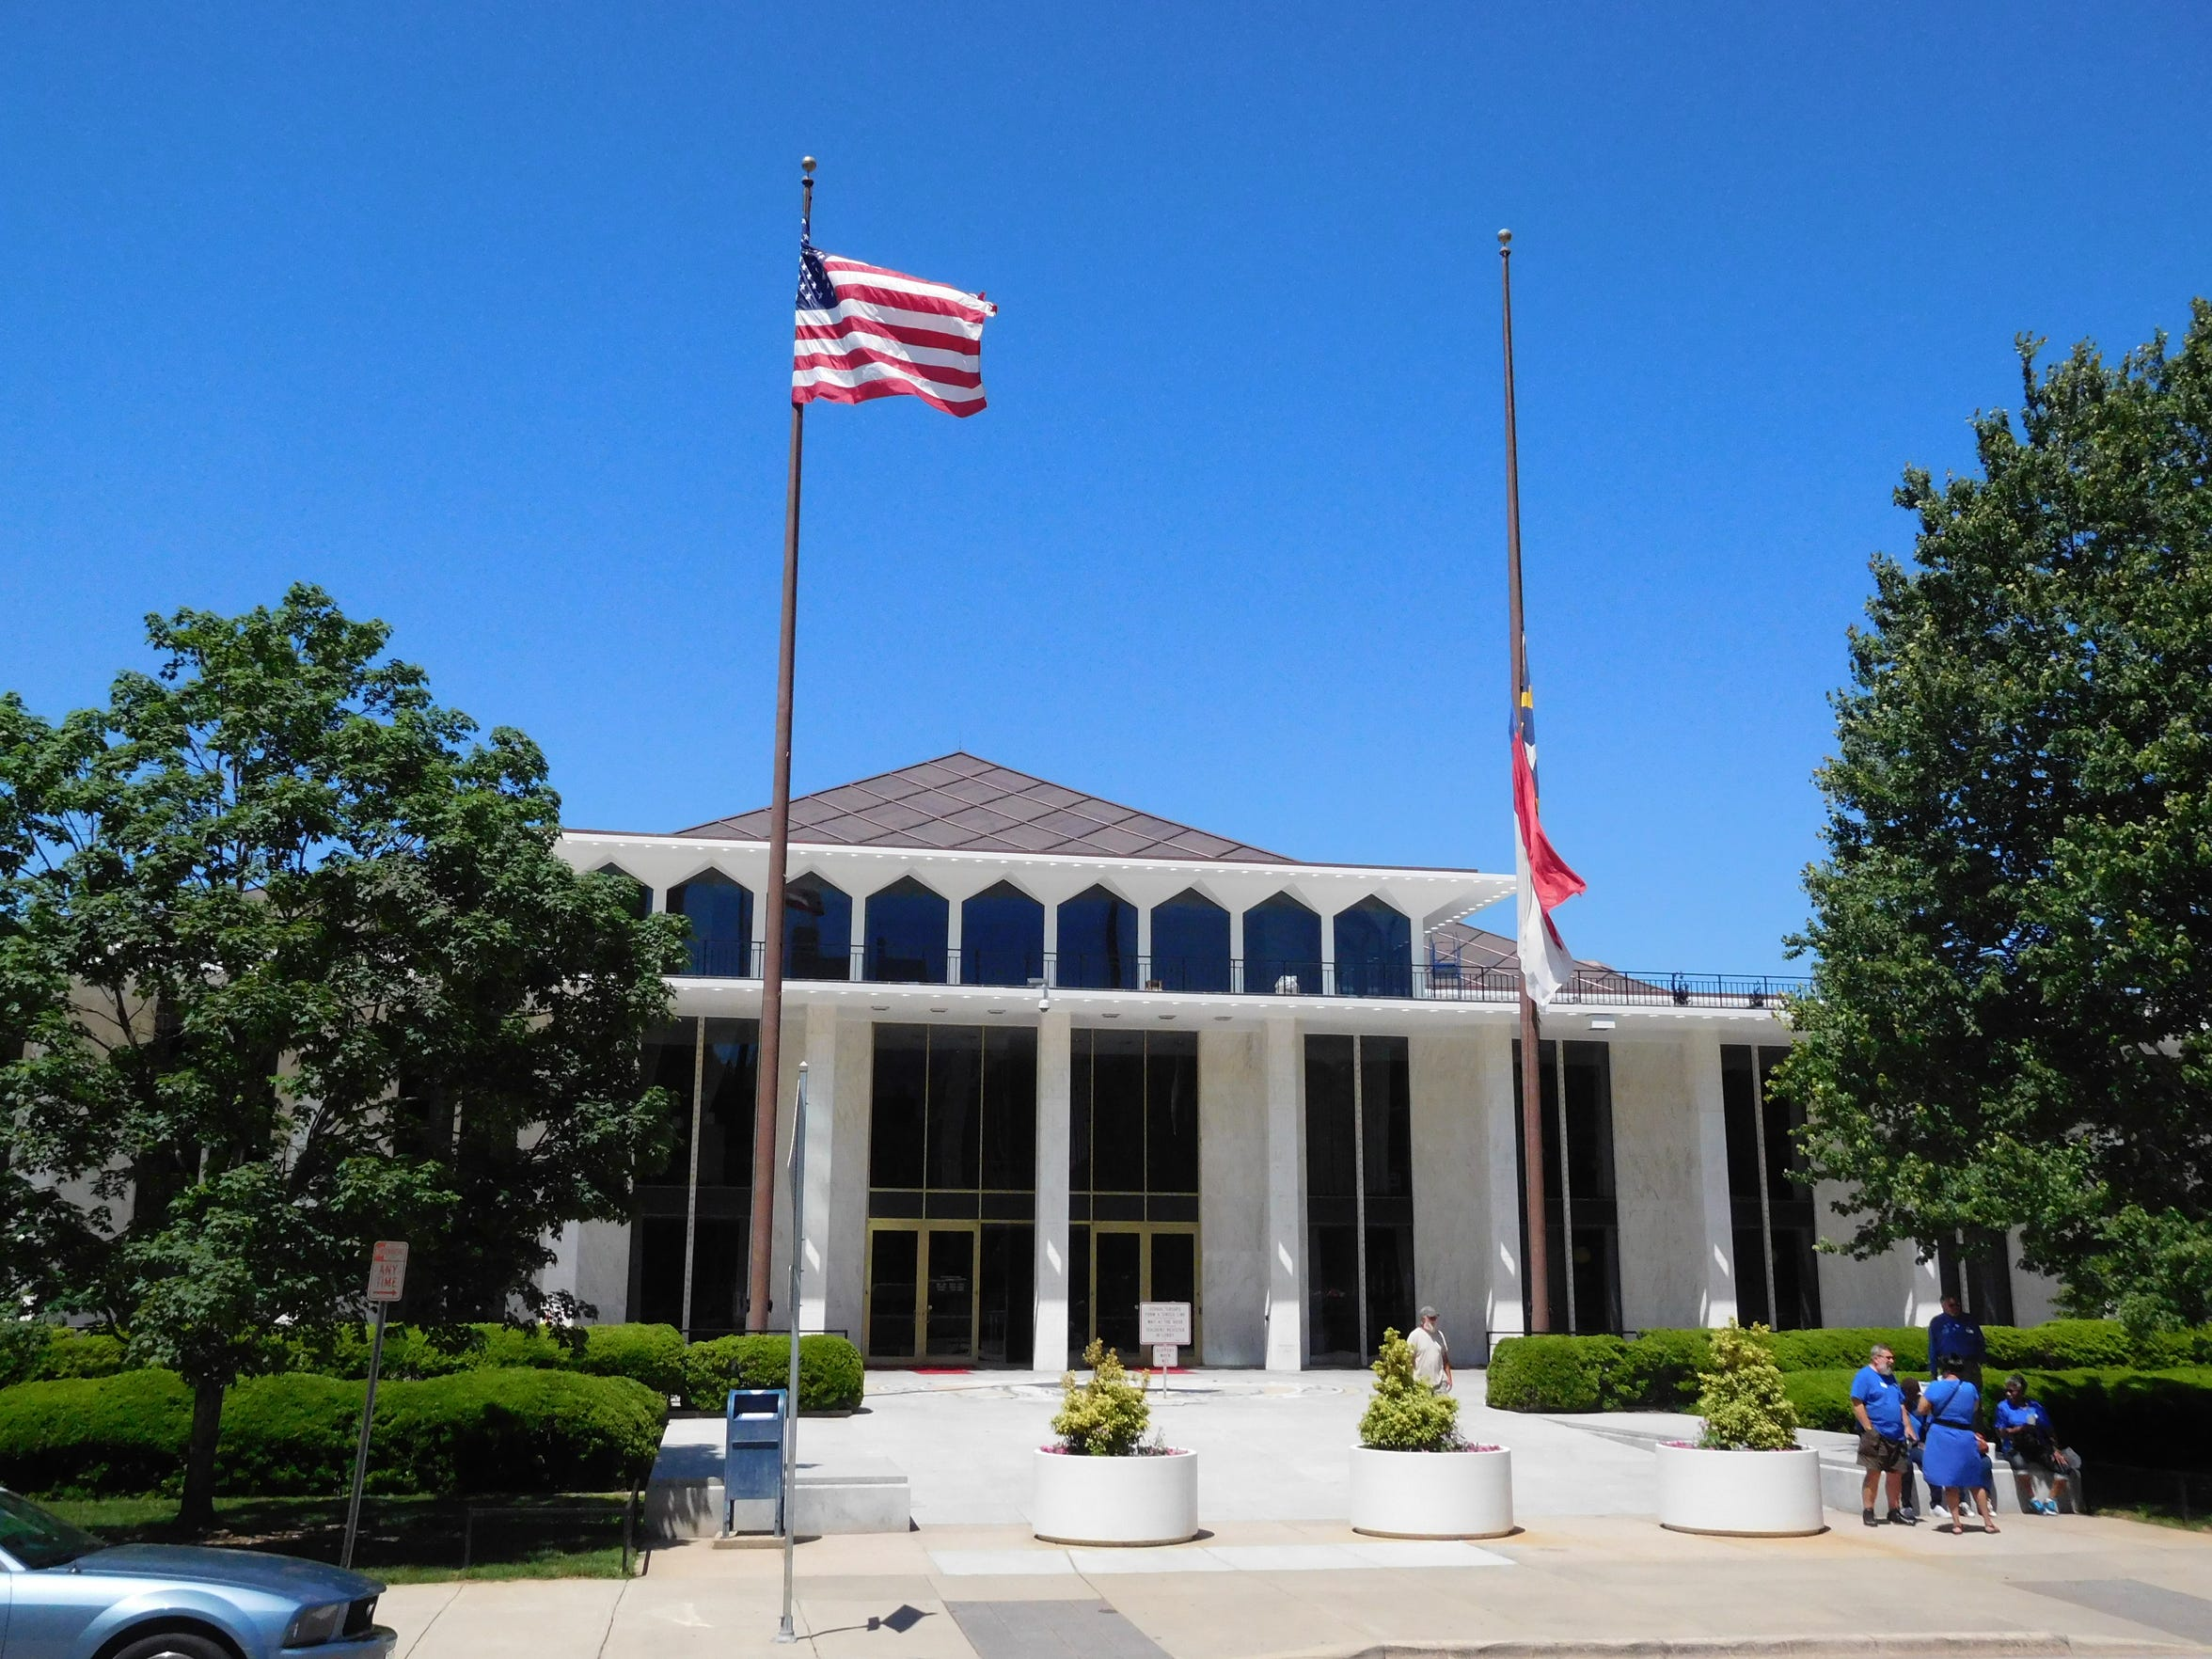 The N.C. Legislative Building in Raleigh.